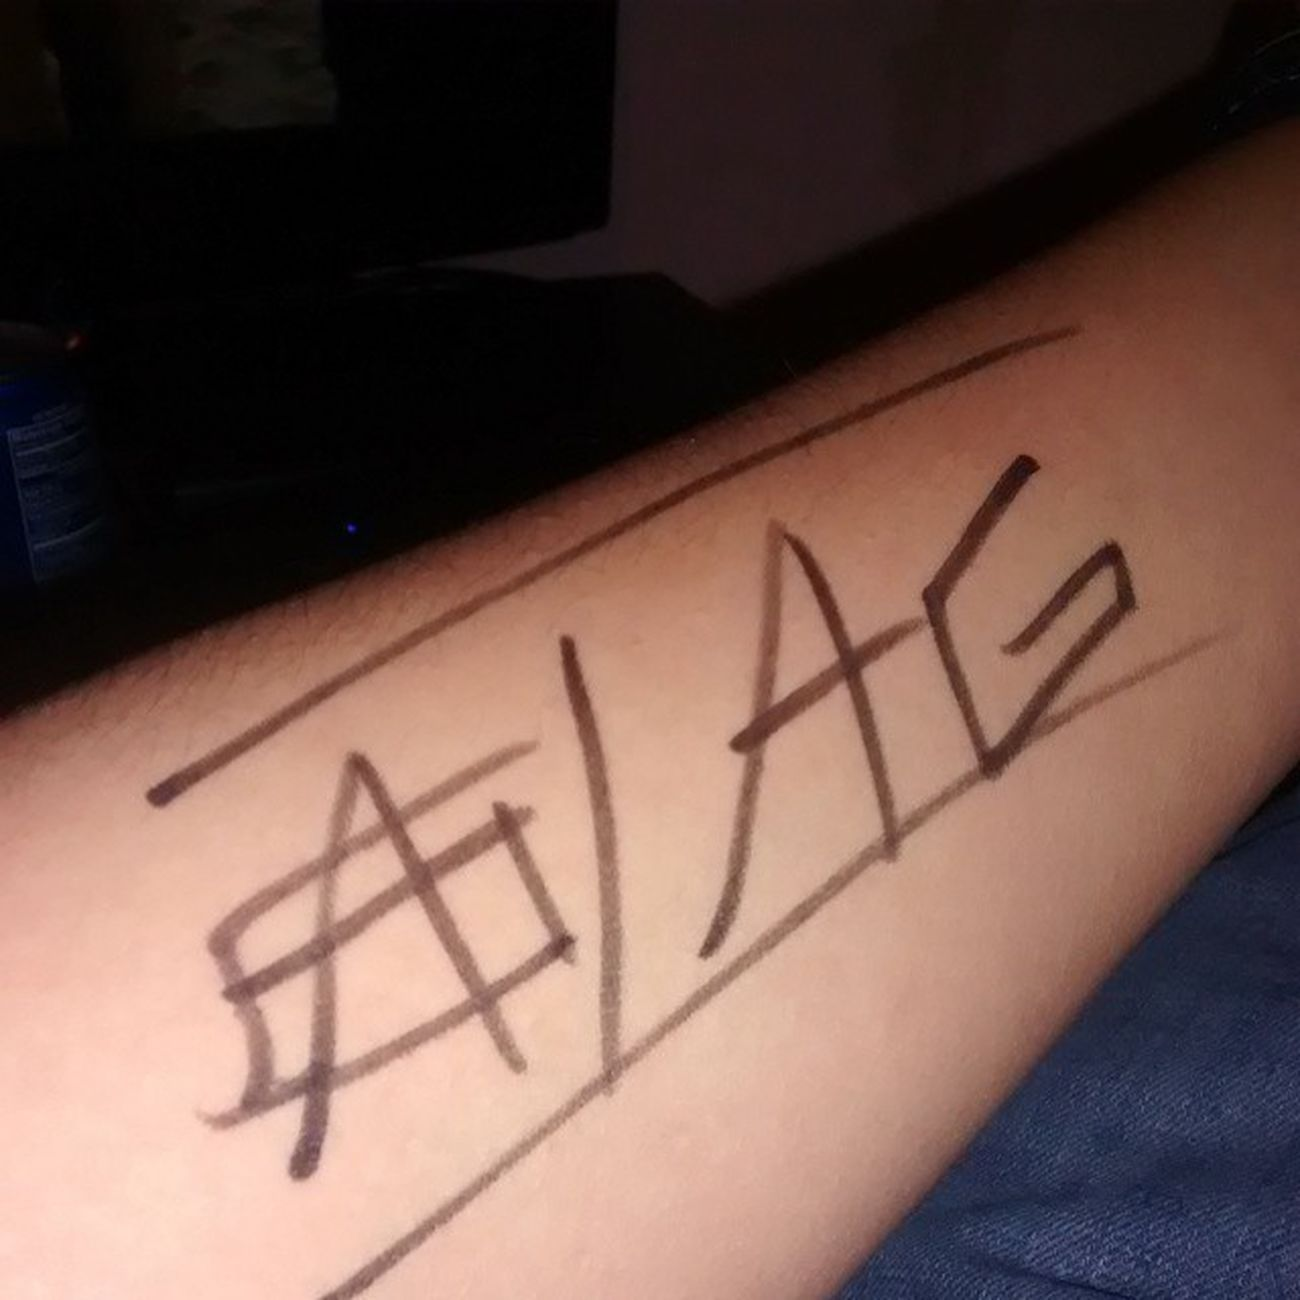 I should make a official tattoo like this. AGaming AGlogo NotOutYet Arm Gaming followforfollow follow4follow like4like likeforlike PermitMarker GottaLoveIt